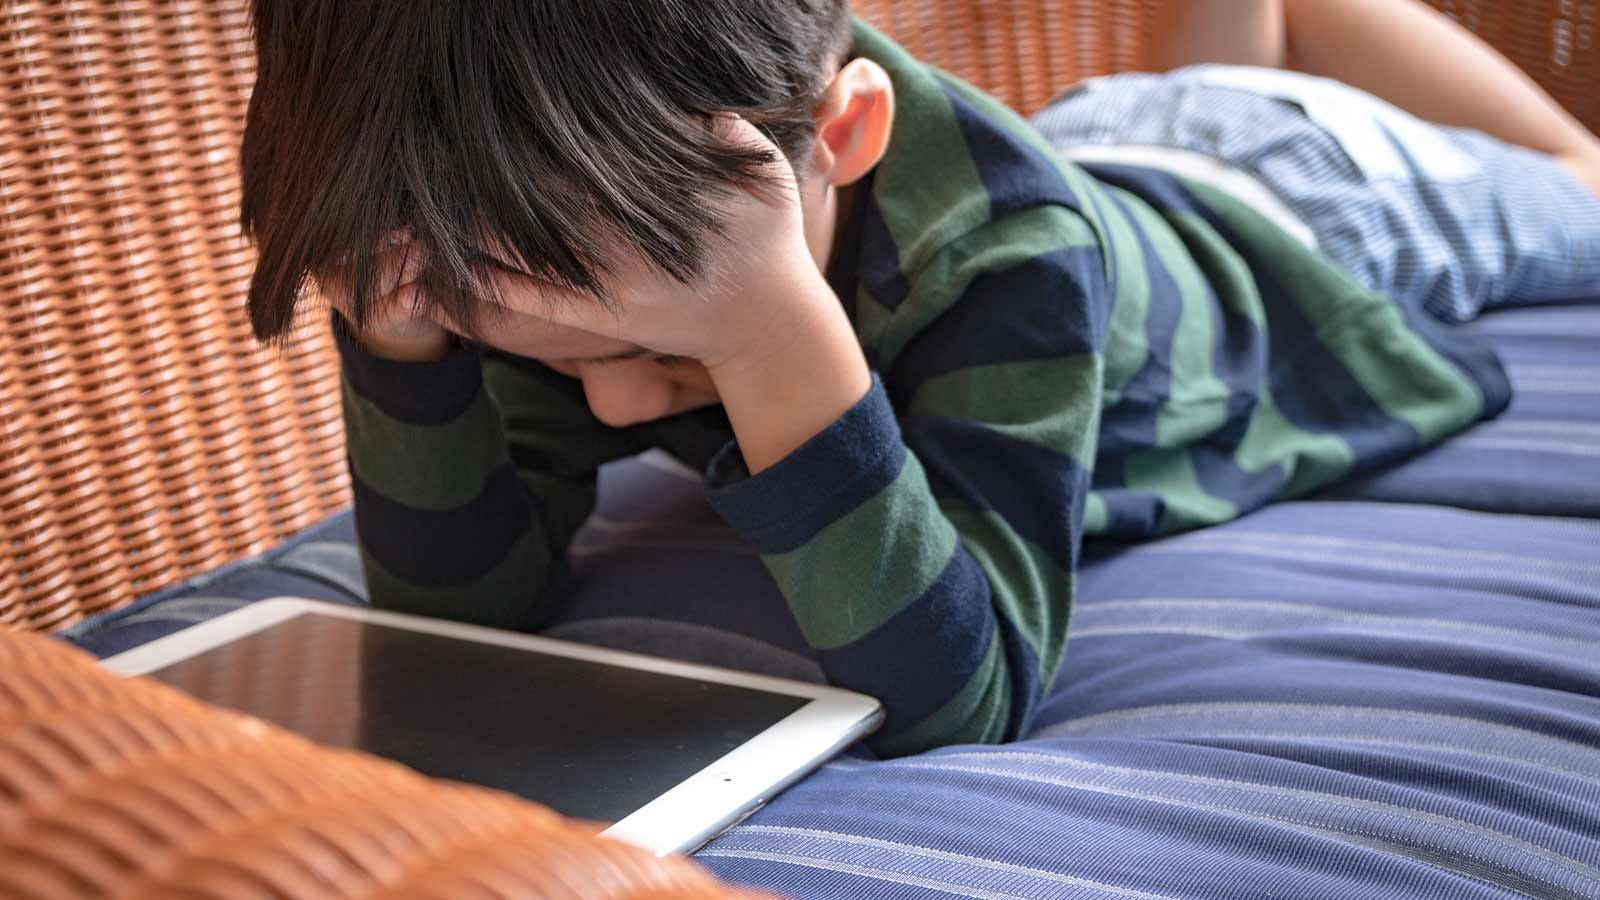 Young boy frustrated by the lack of physical activities during his virtual summer camp.